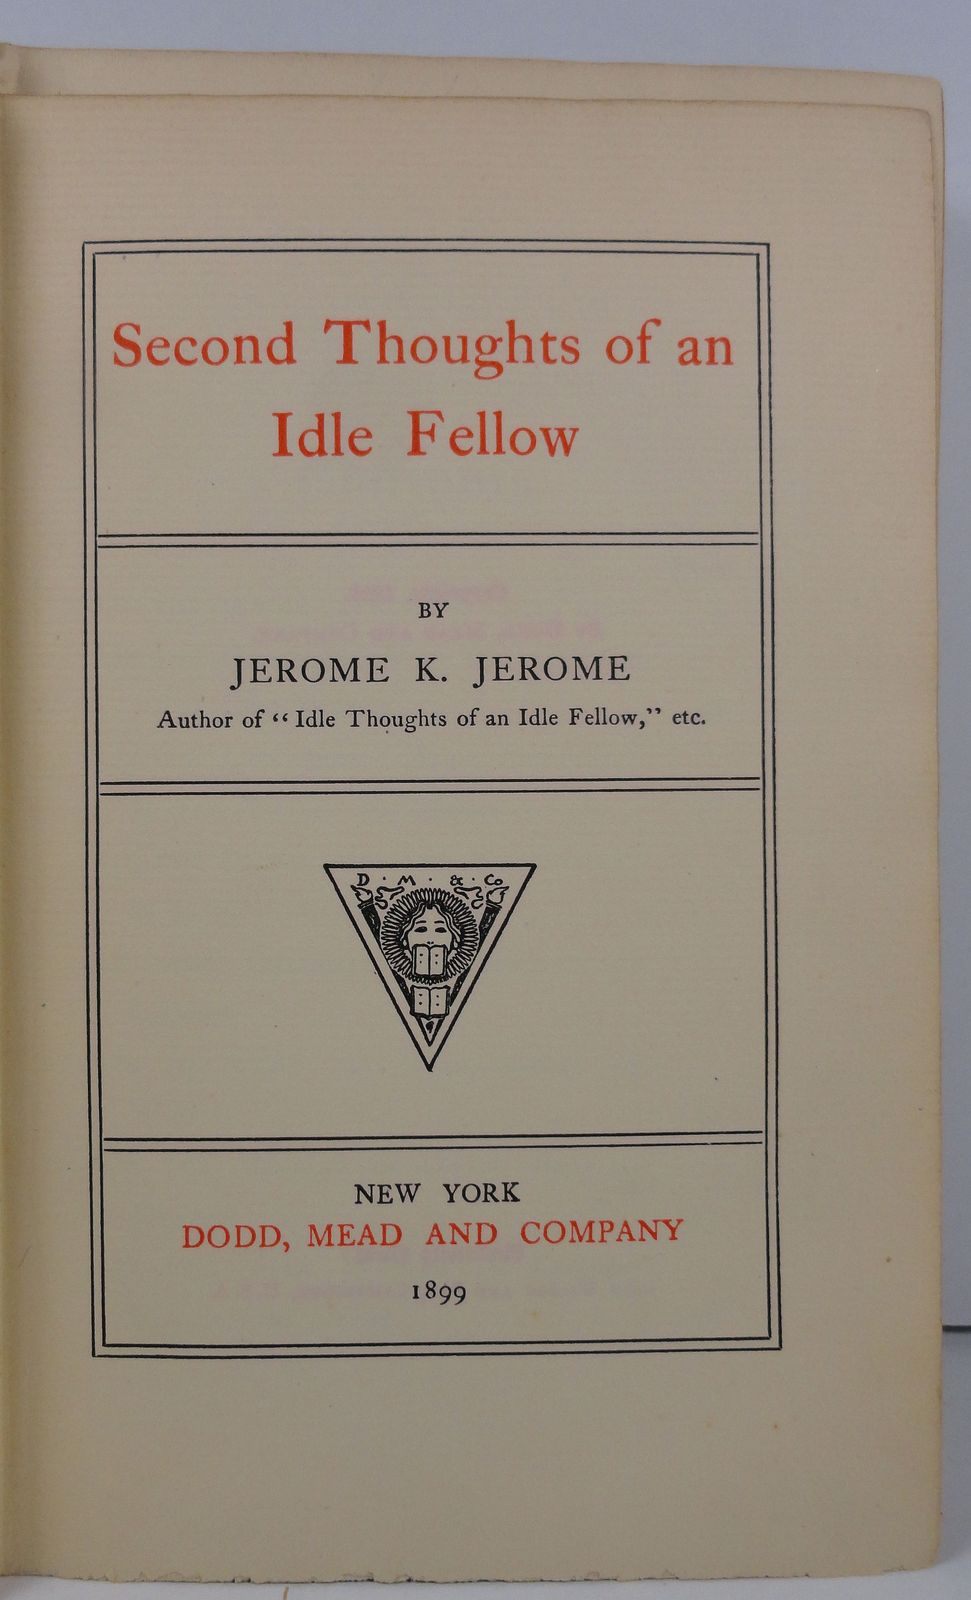 Second Thoughts of an Idle Fellow by Jerome K. Jerome